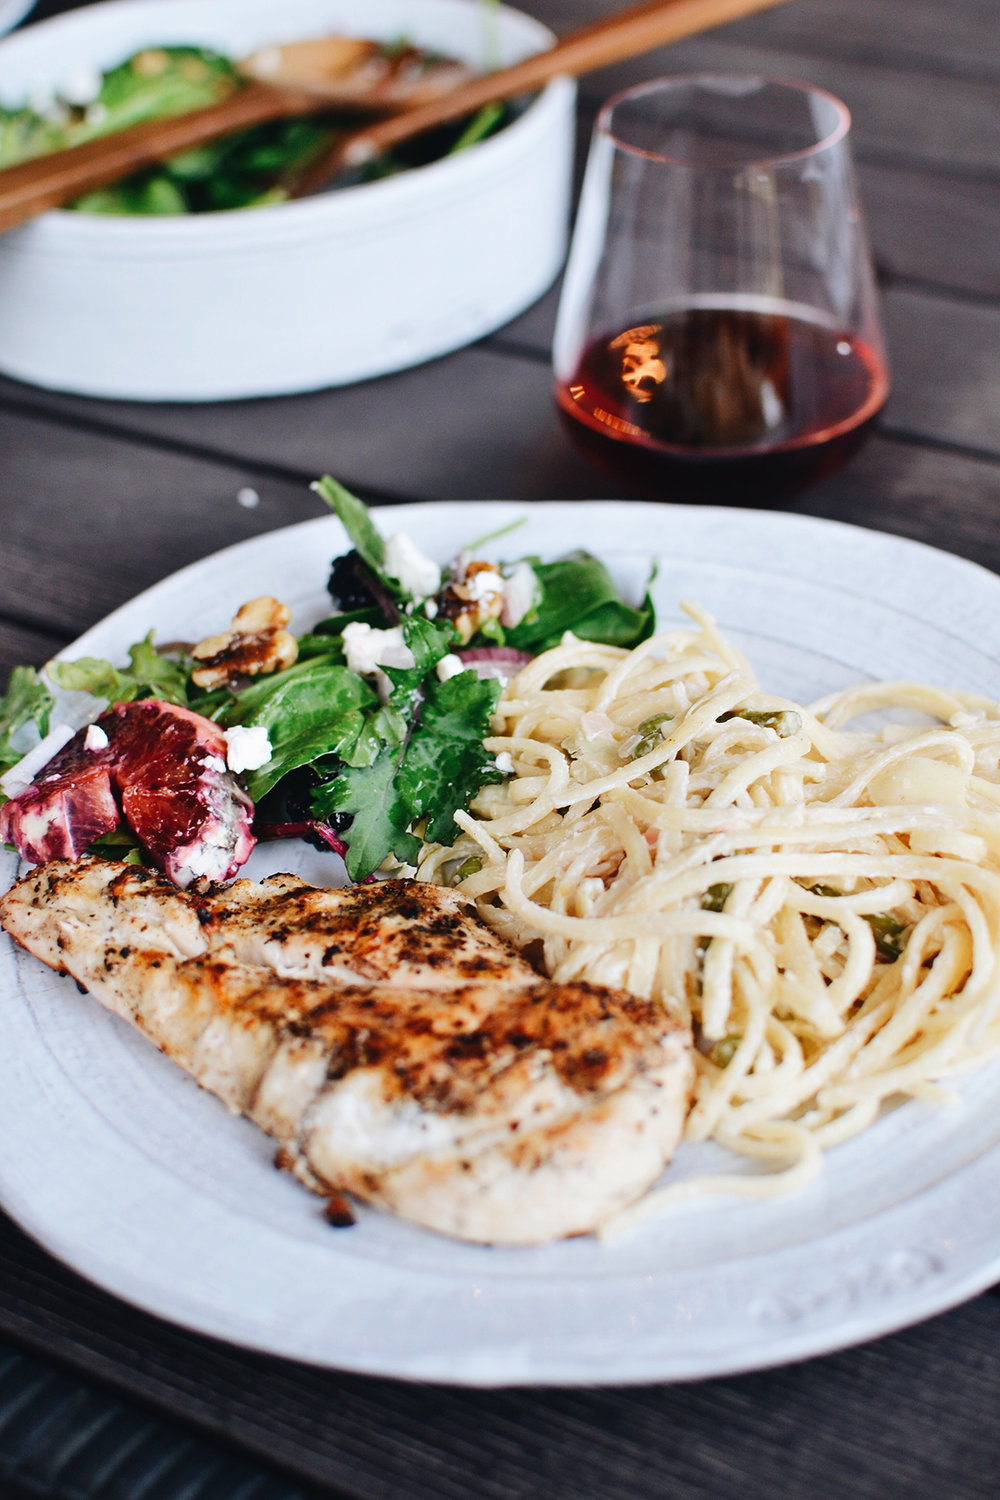 Jordan grilled chicken breasts with montreal chicken seasoning, and it was the perfect addition to the pasta!